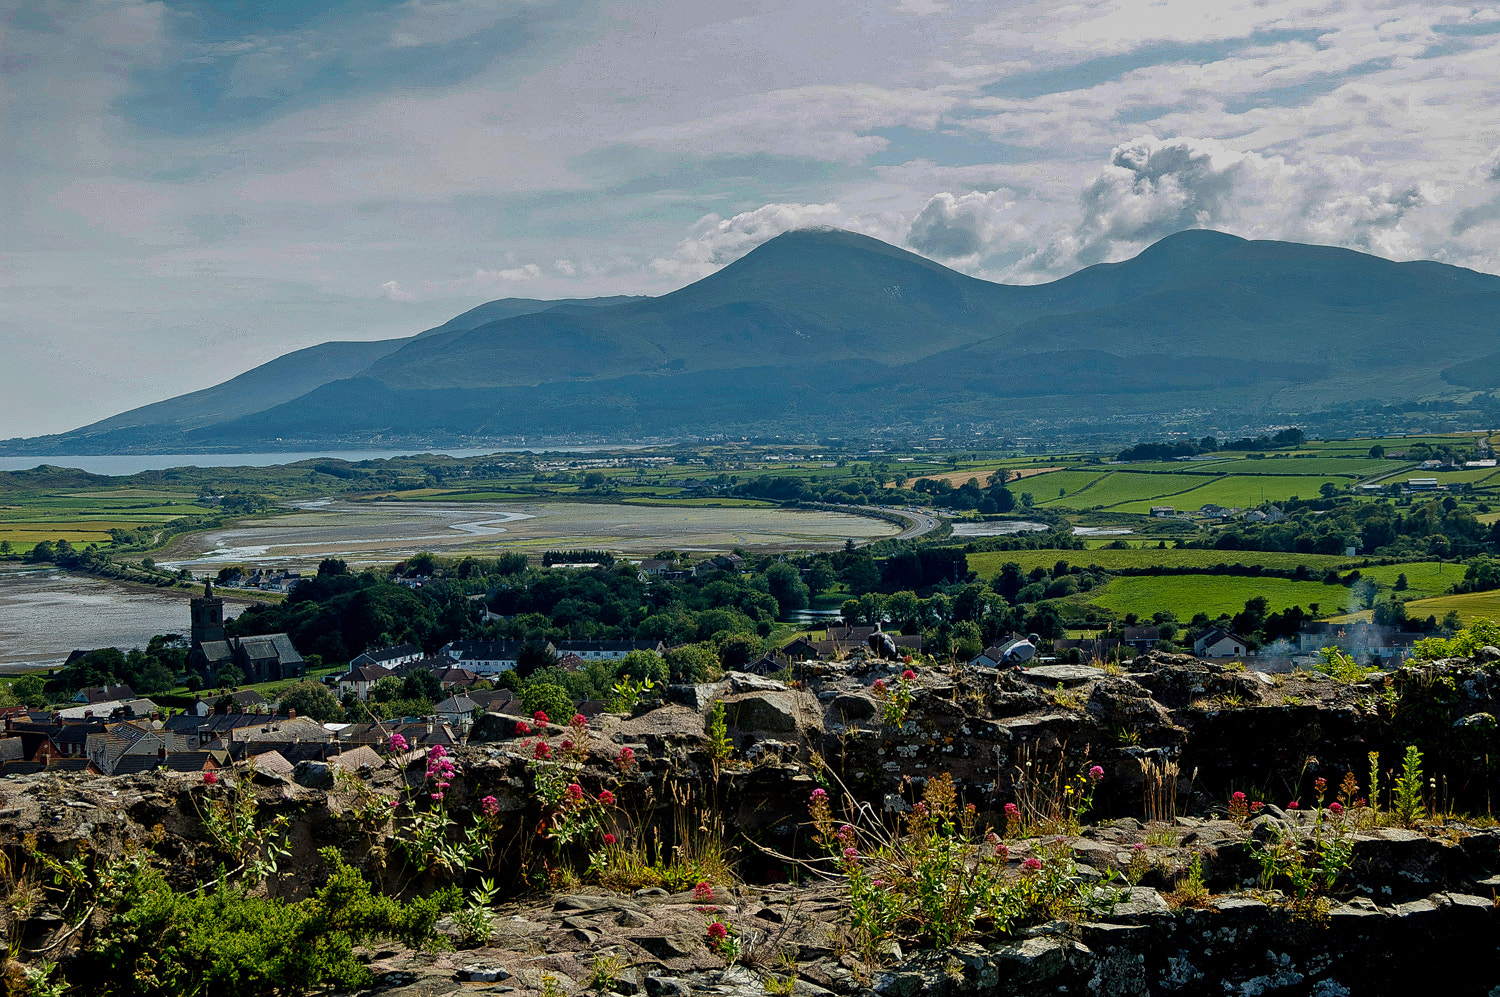 Photograph The Mountains of Mourne by Fergal Kearney on 500px